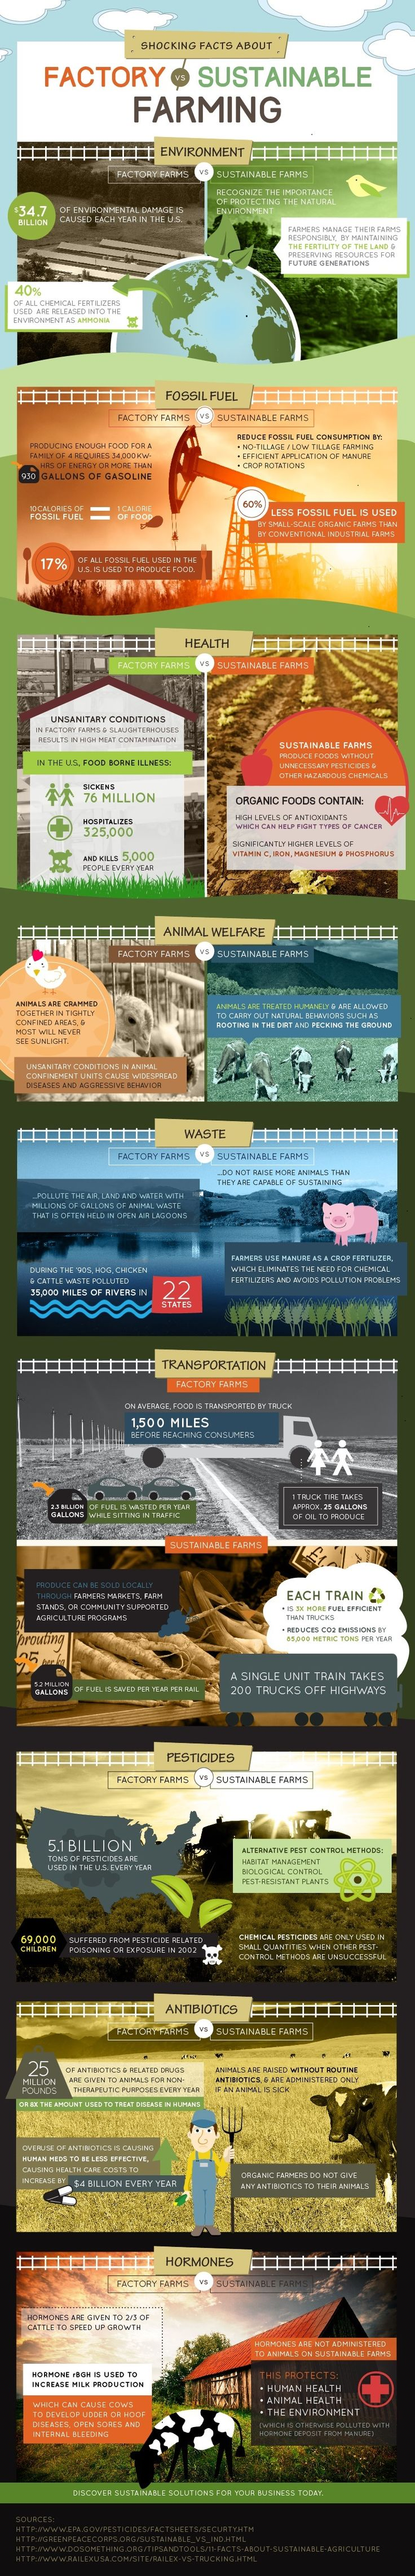 Shocking Facts about Factory Farming vs Sustainable Farming - The Urban Ecolife | The Urban Ecolife